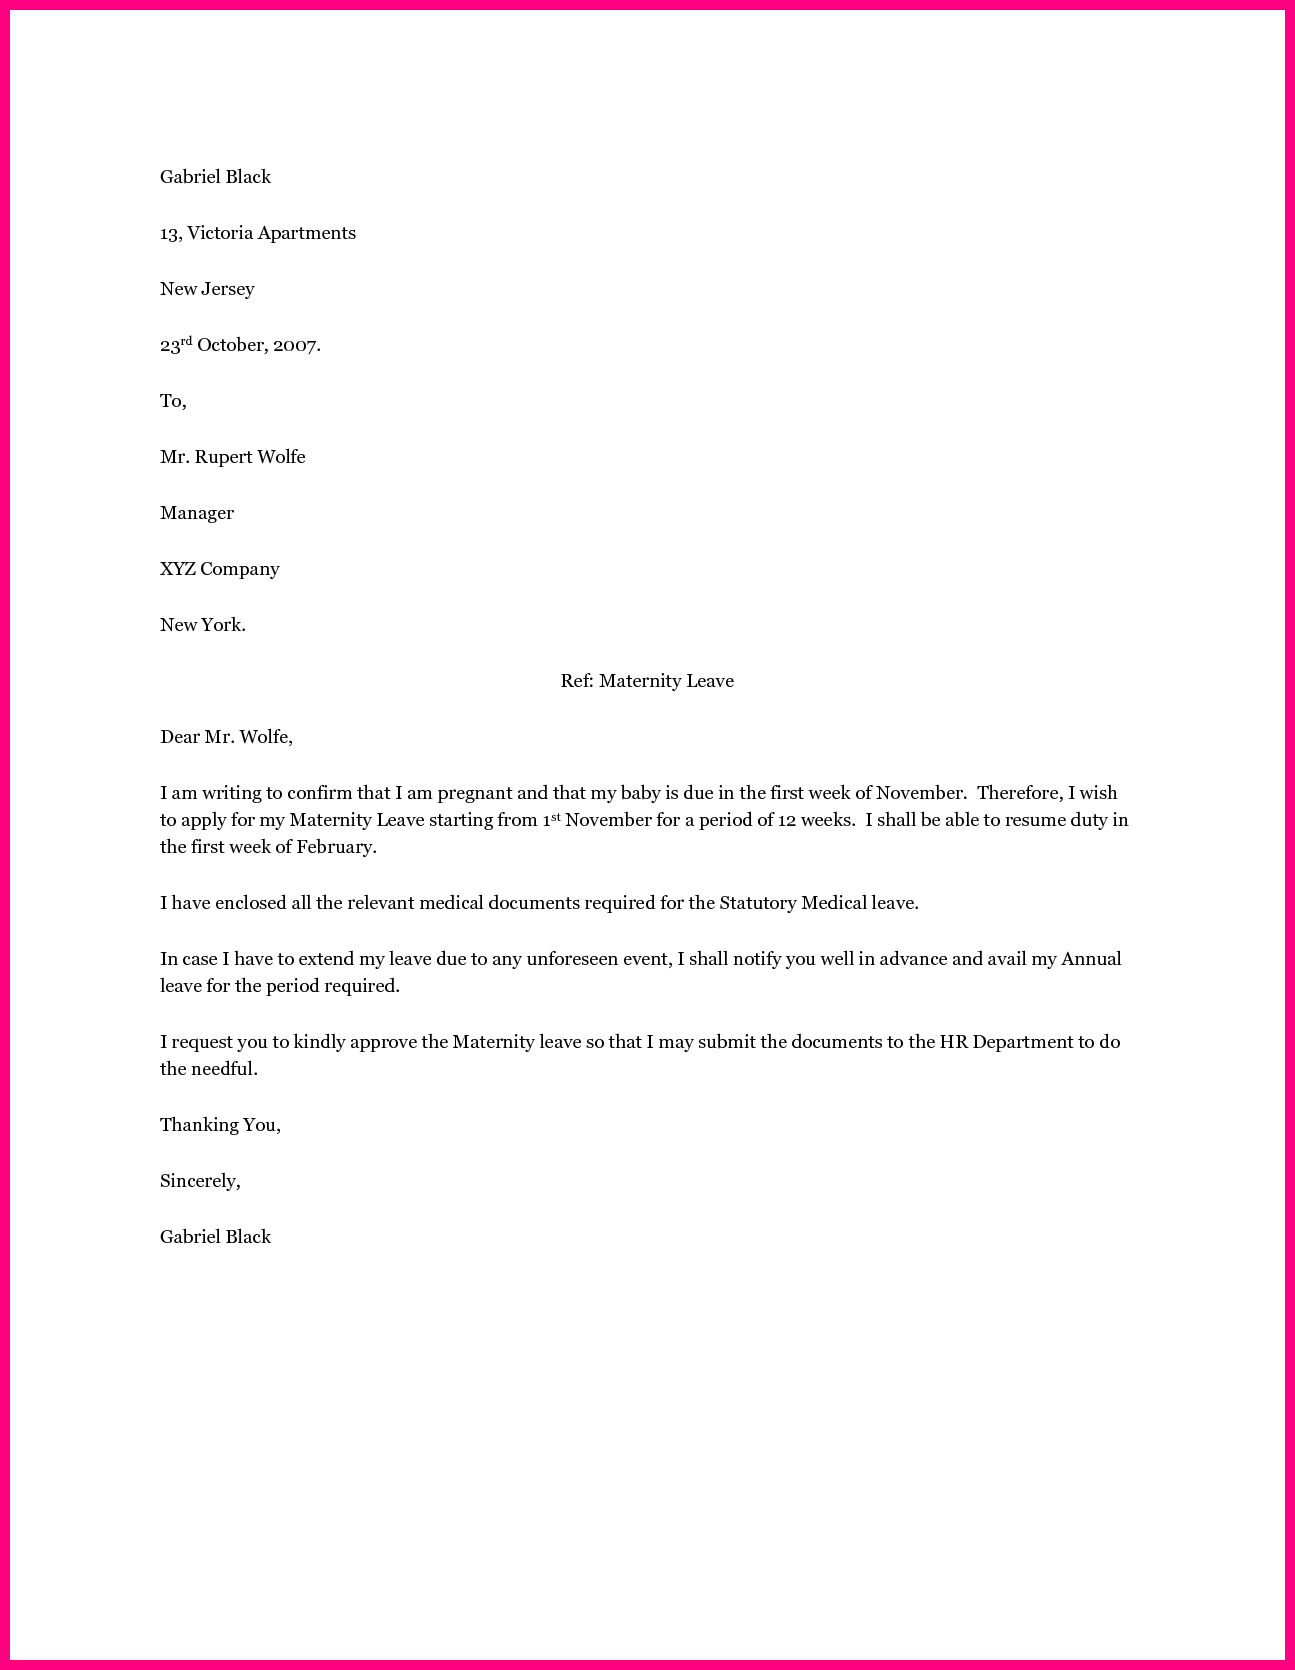 Resignation Letter Free Template Download - Employee Maternity Leave Letter Sample Application format for School